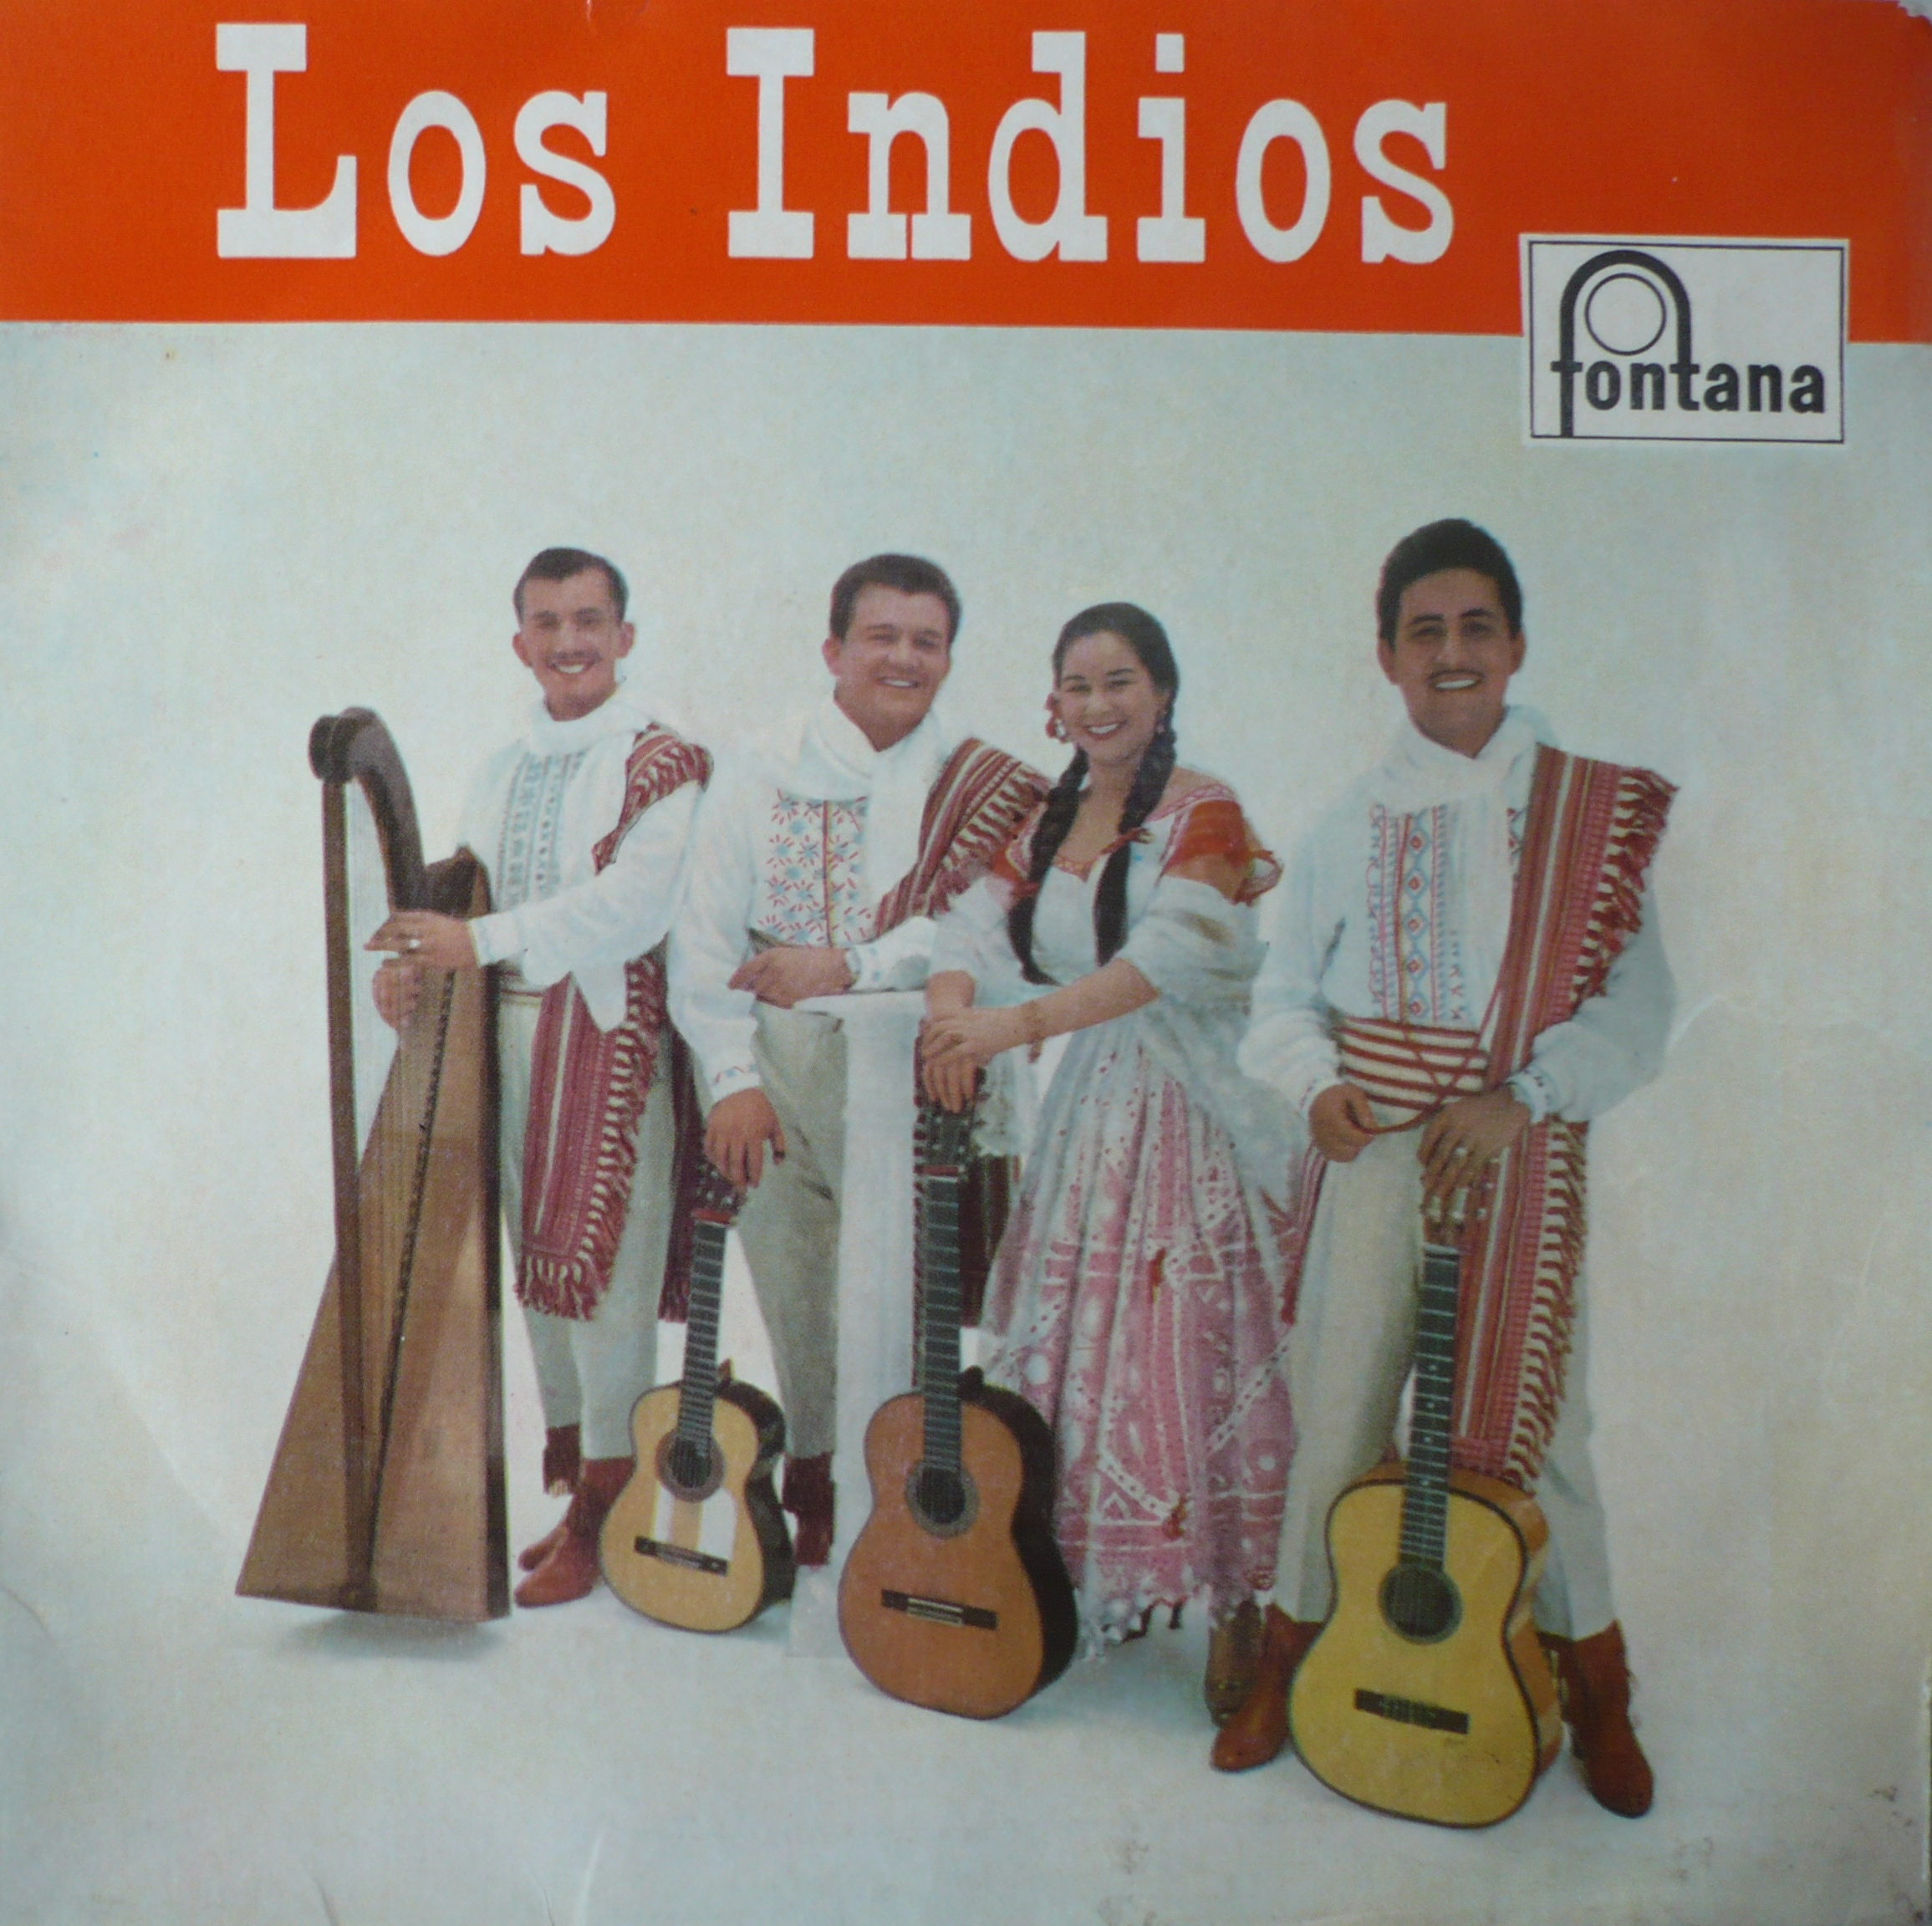 los indios single personals Us #6 • us ac #3 • uk #5 • from the album maria elena • written by lorenzo barcelata • music vf, us & uk hits charts.